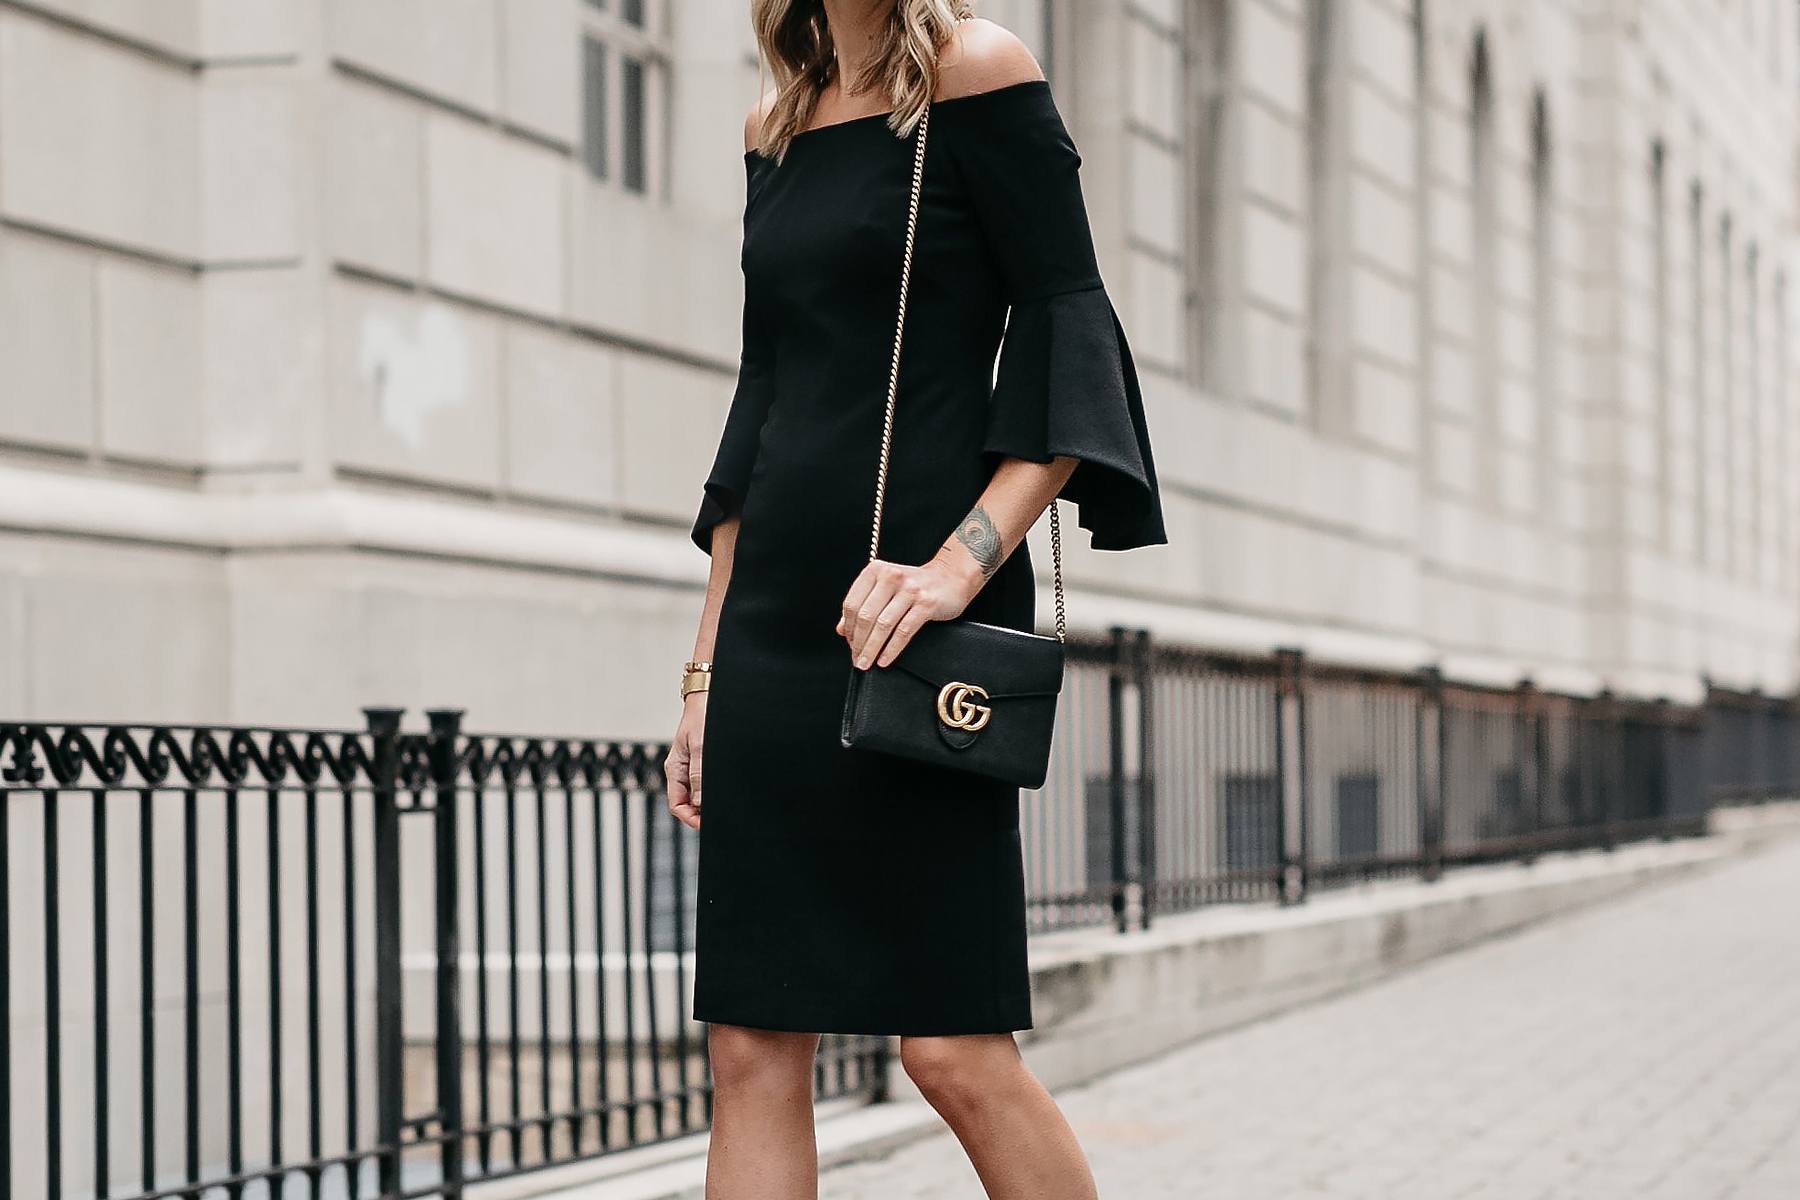 Off-the-Shoulder Black Holiday Dress Gucci Marmont Handbag Fashion Jackson Dallas Blogger Fashion Blogger Street Style